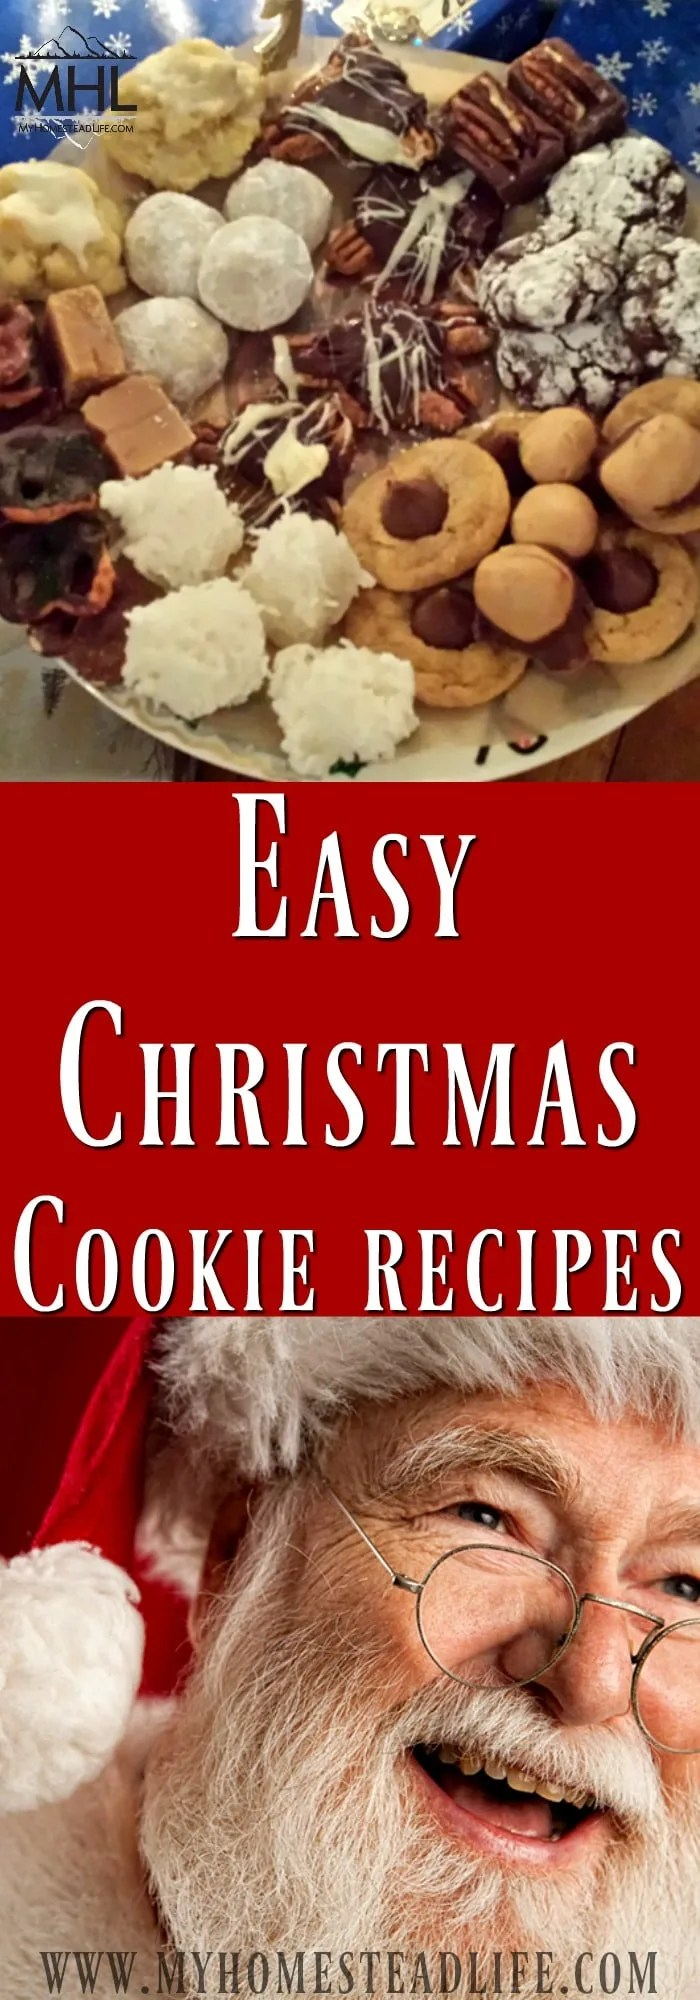 Easy Christmas Cookie Recipes for the Ultimate Cookie Platter